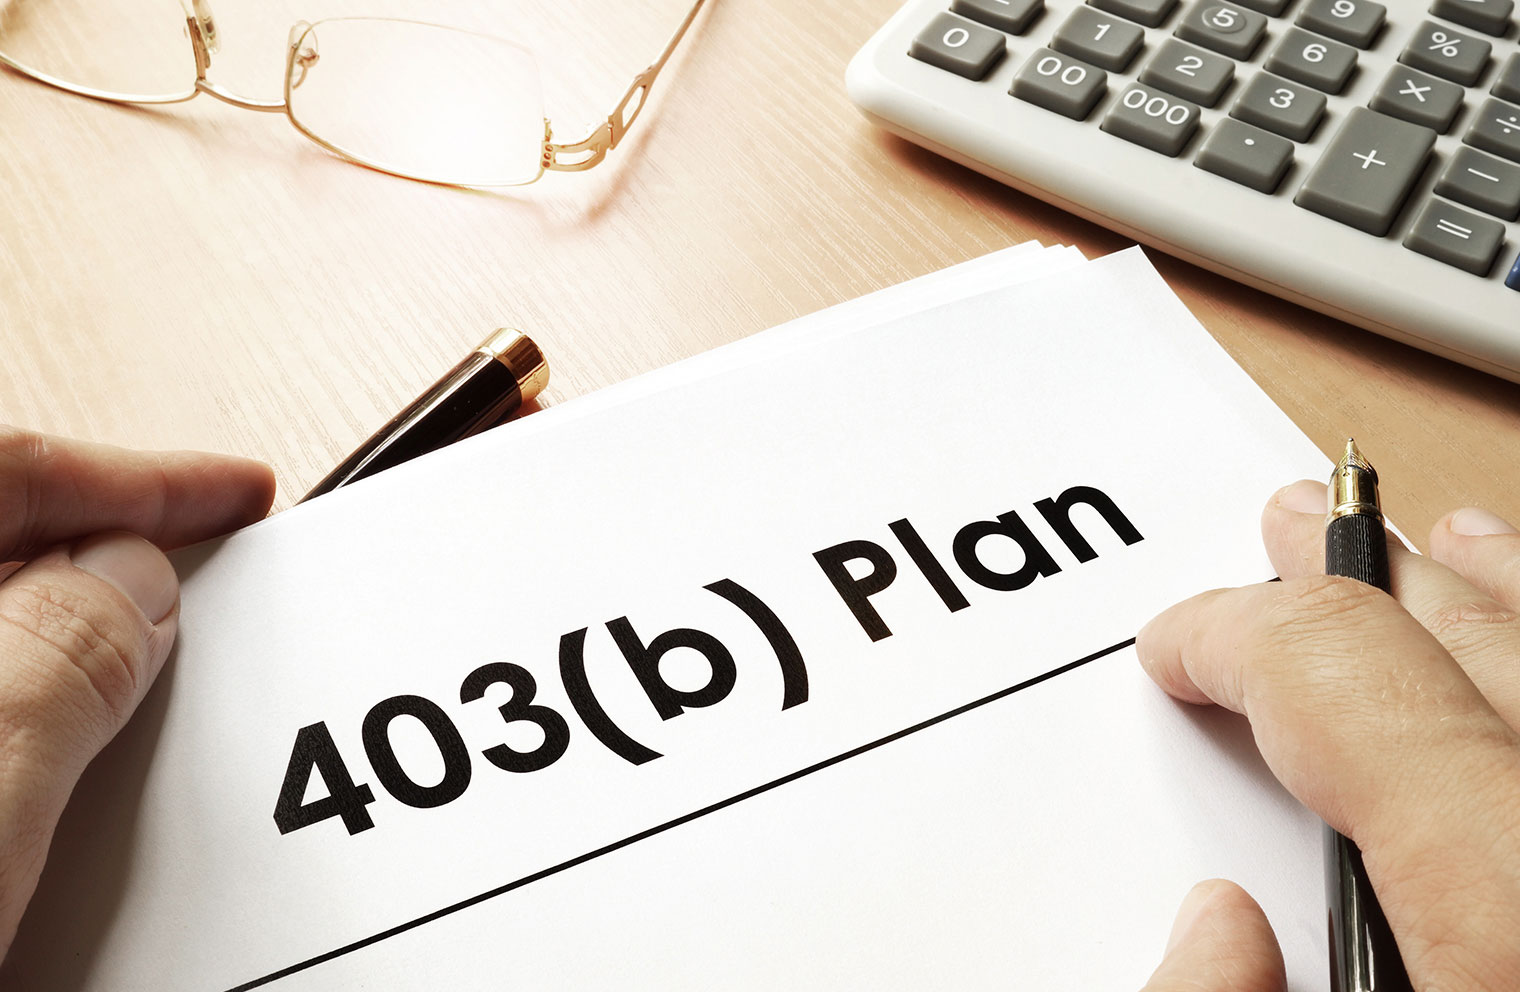 Image of 403(b) Plan written on paper at desk with calculator.